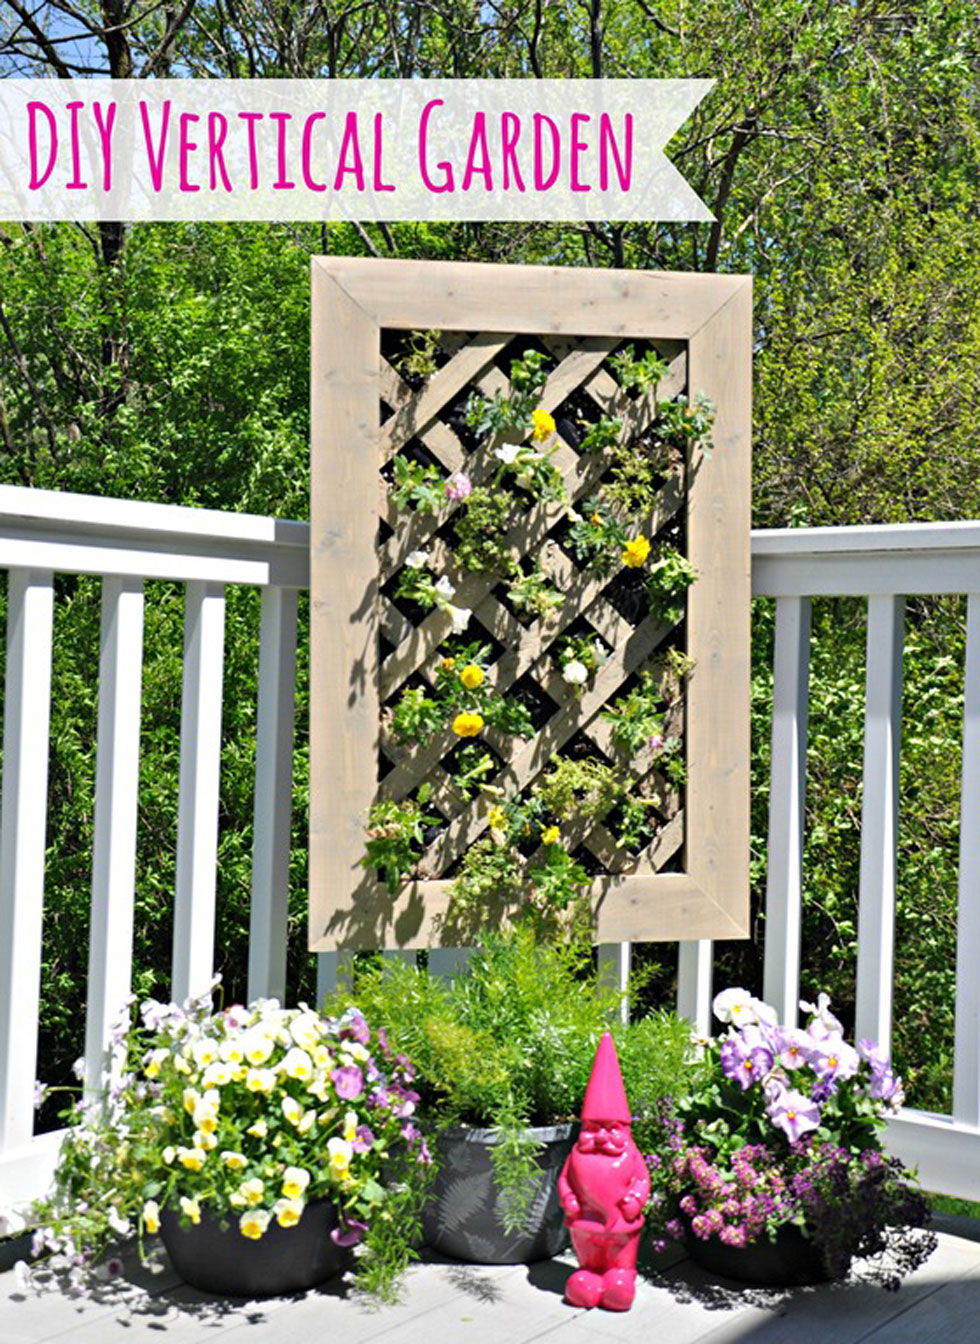 Vertical Gardening Ideas 26 creative ways to plant a vertical garden how to make a vertical garden 26 Creative Ways To Plant A Vertical Garden How To Make A Vertical Garden